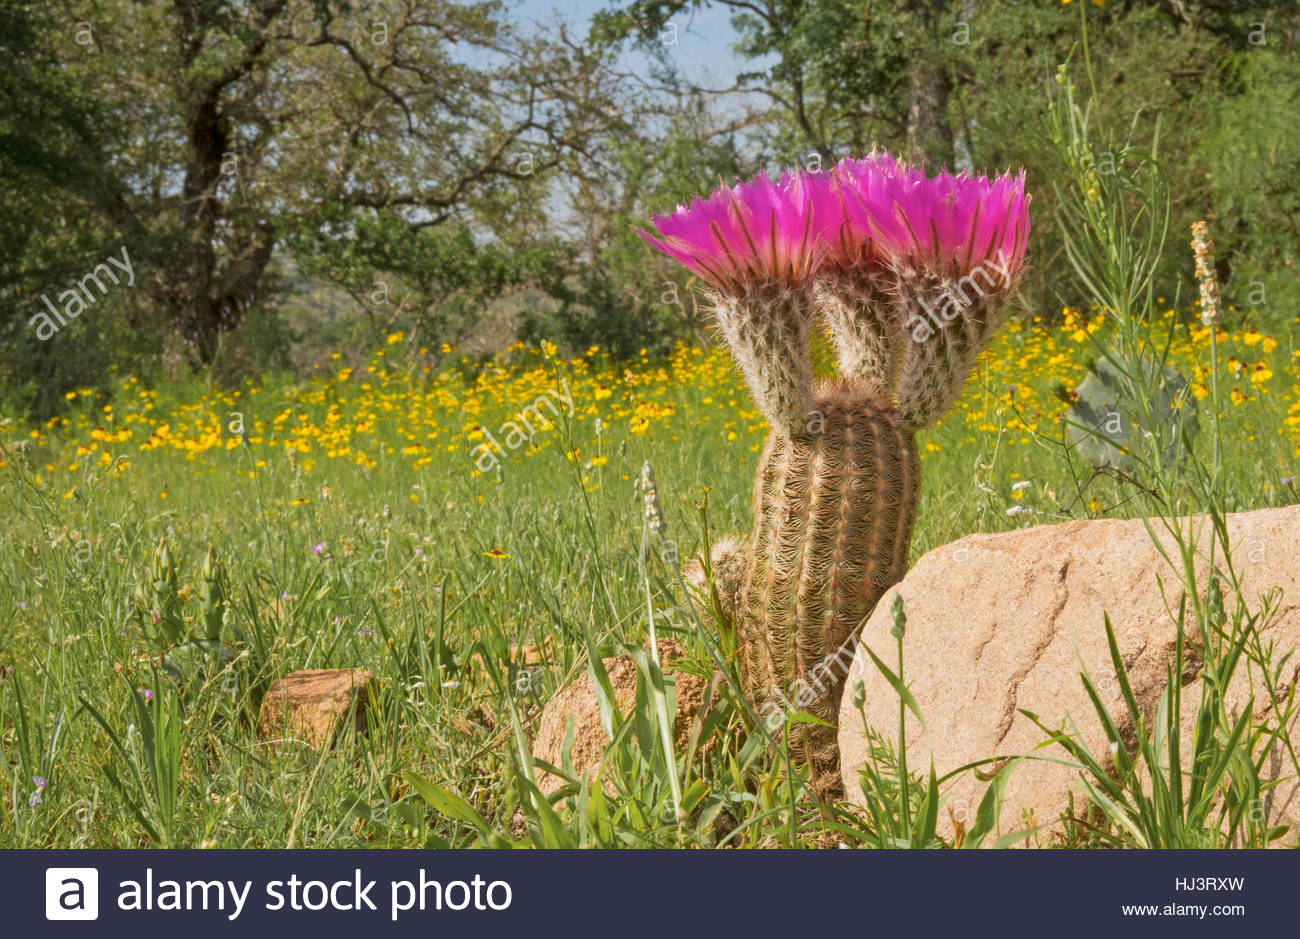 An image of a Lace Cactus (Echinocereus reichenbachii), also known as Hedgehog Cactus, in a field of wildflowers - Stock Image